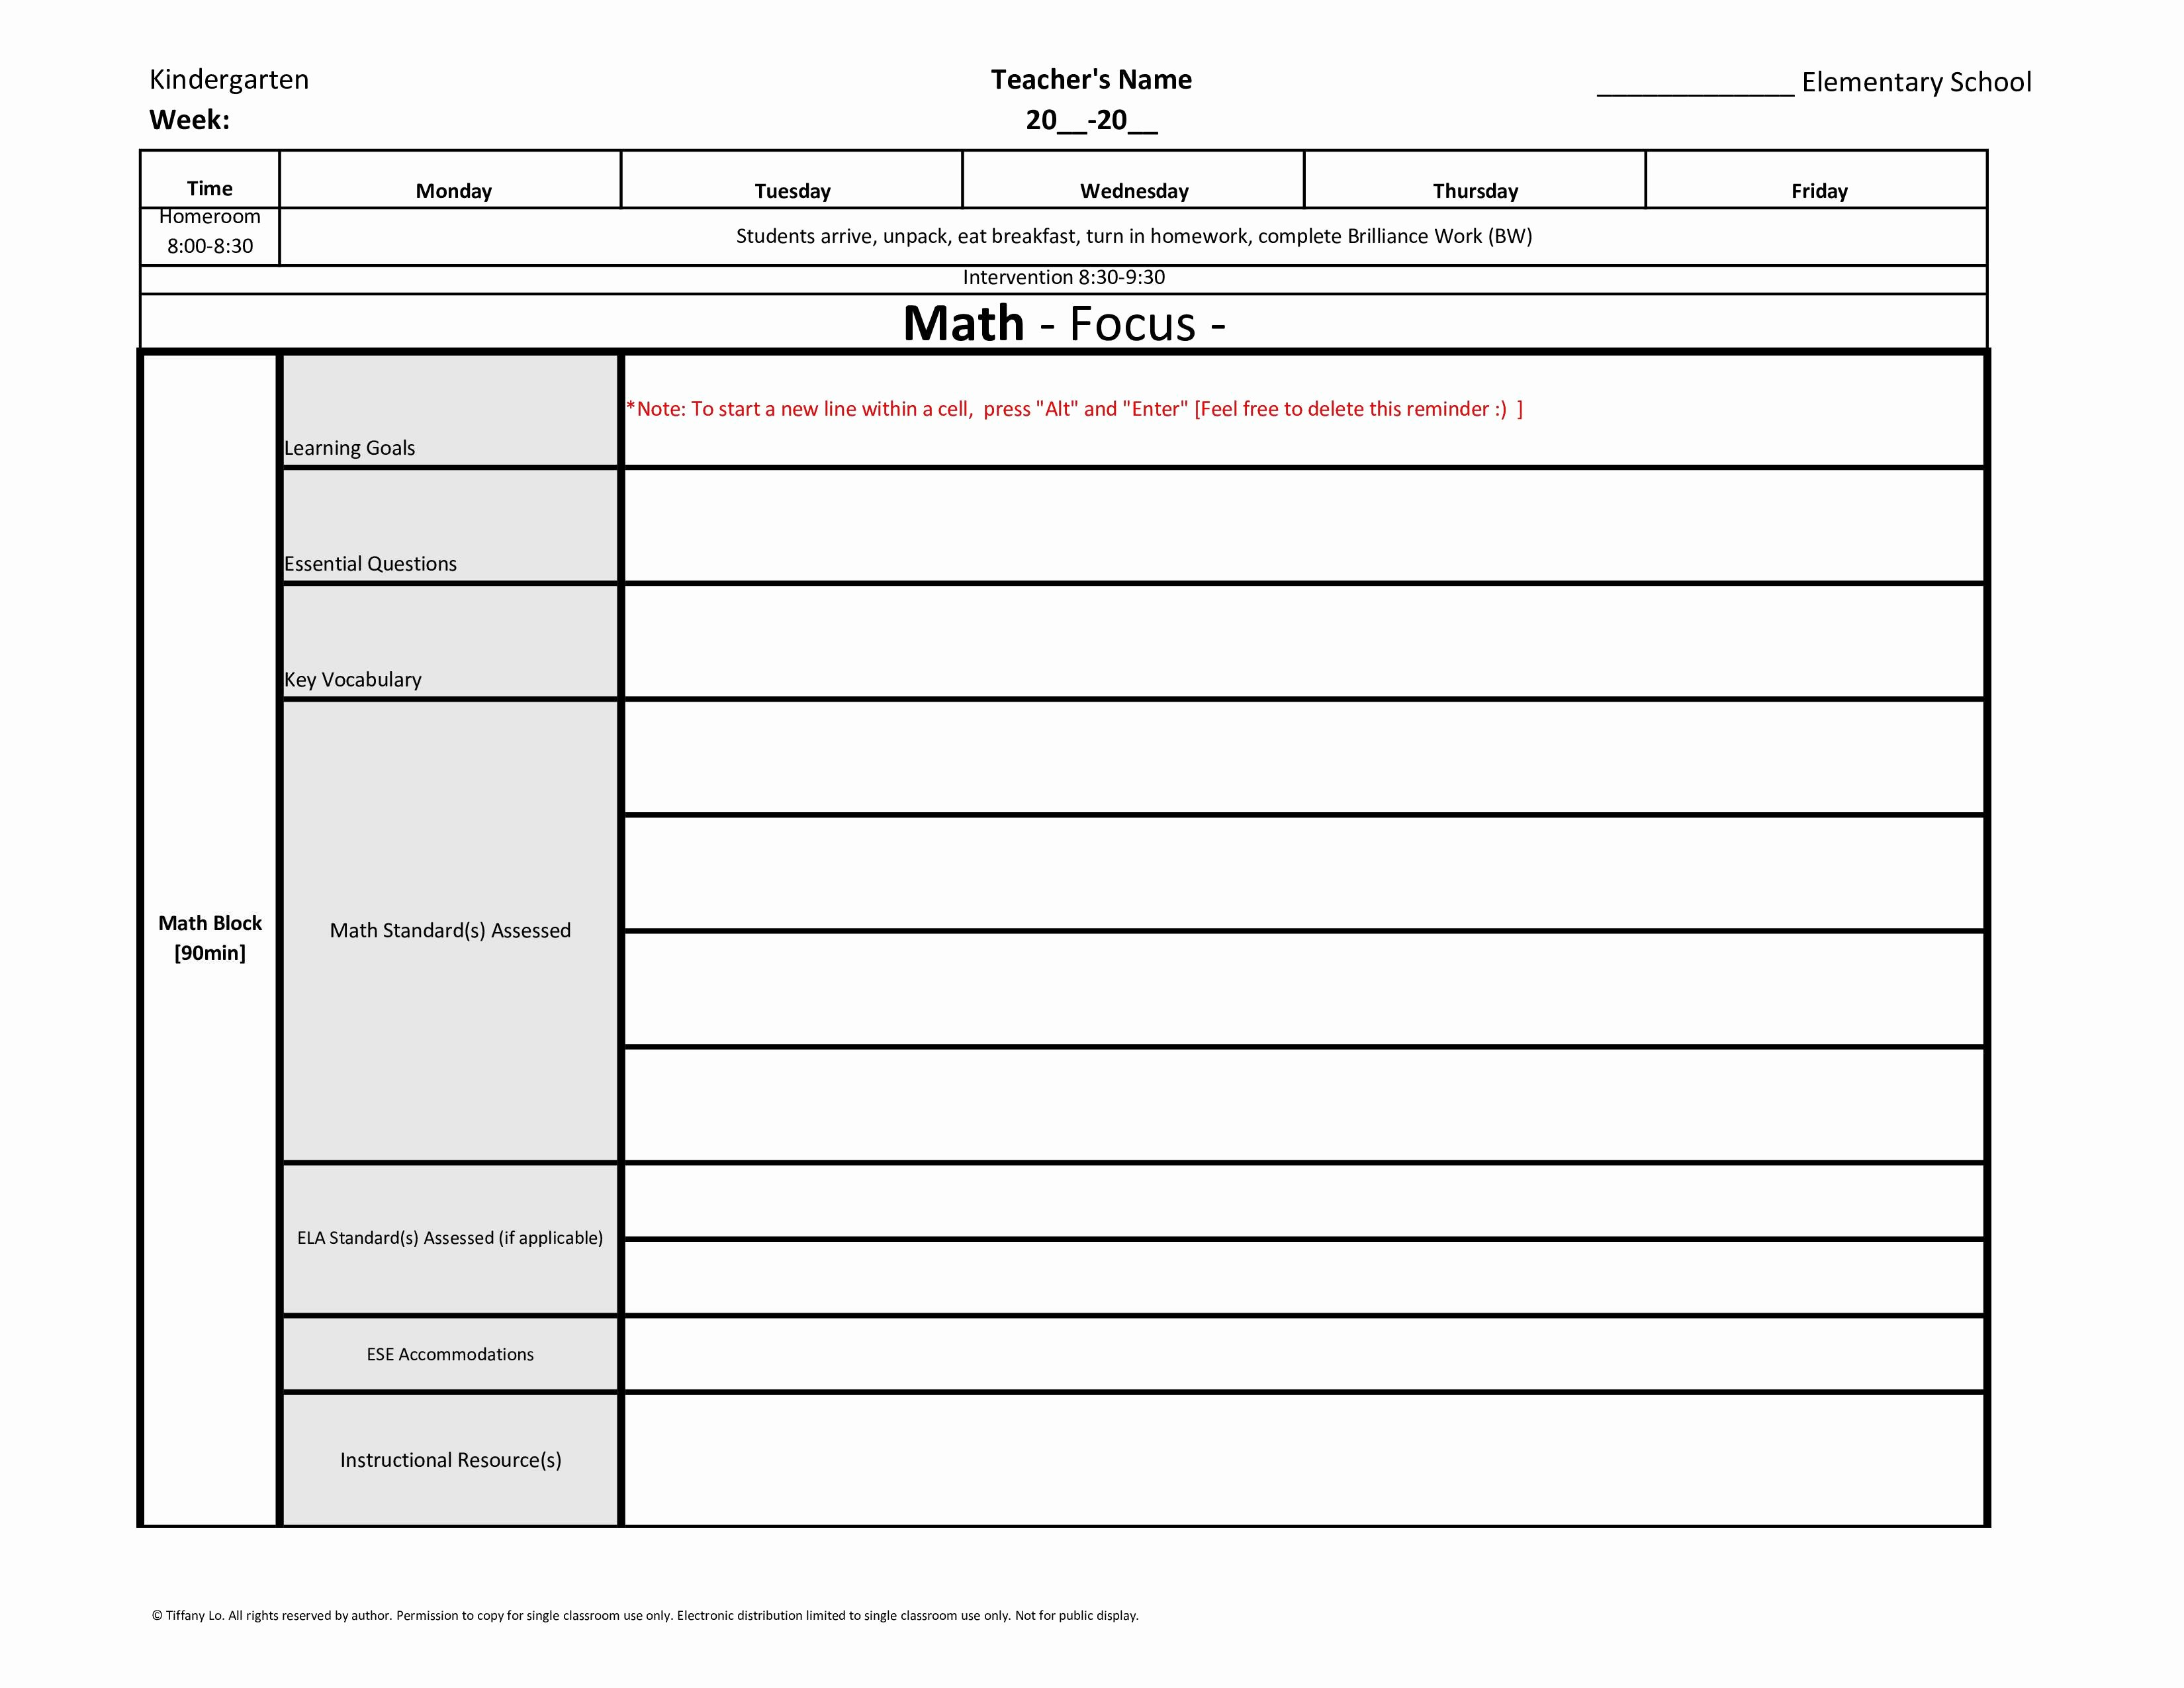 Weekly Lesson Plan Template New Kindergarten Weekly Lesson Plan Template W Florida